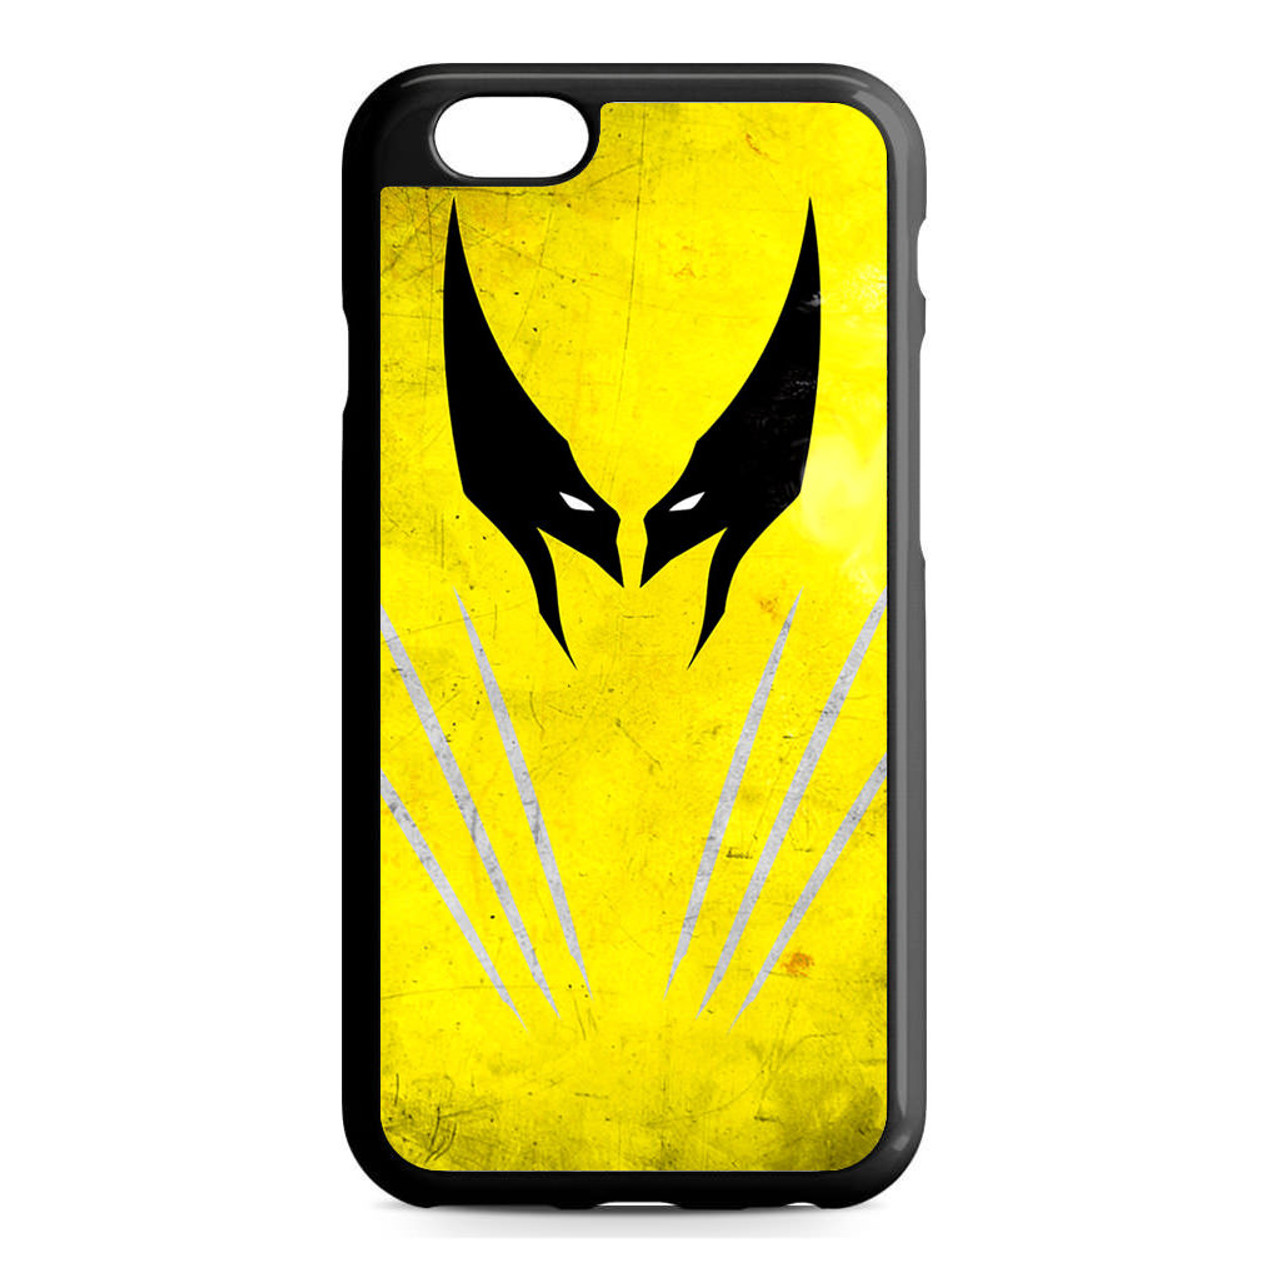 men iphone 6 case